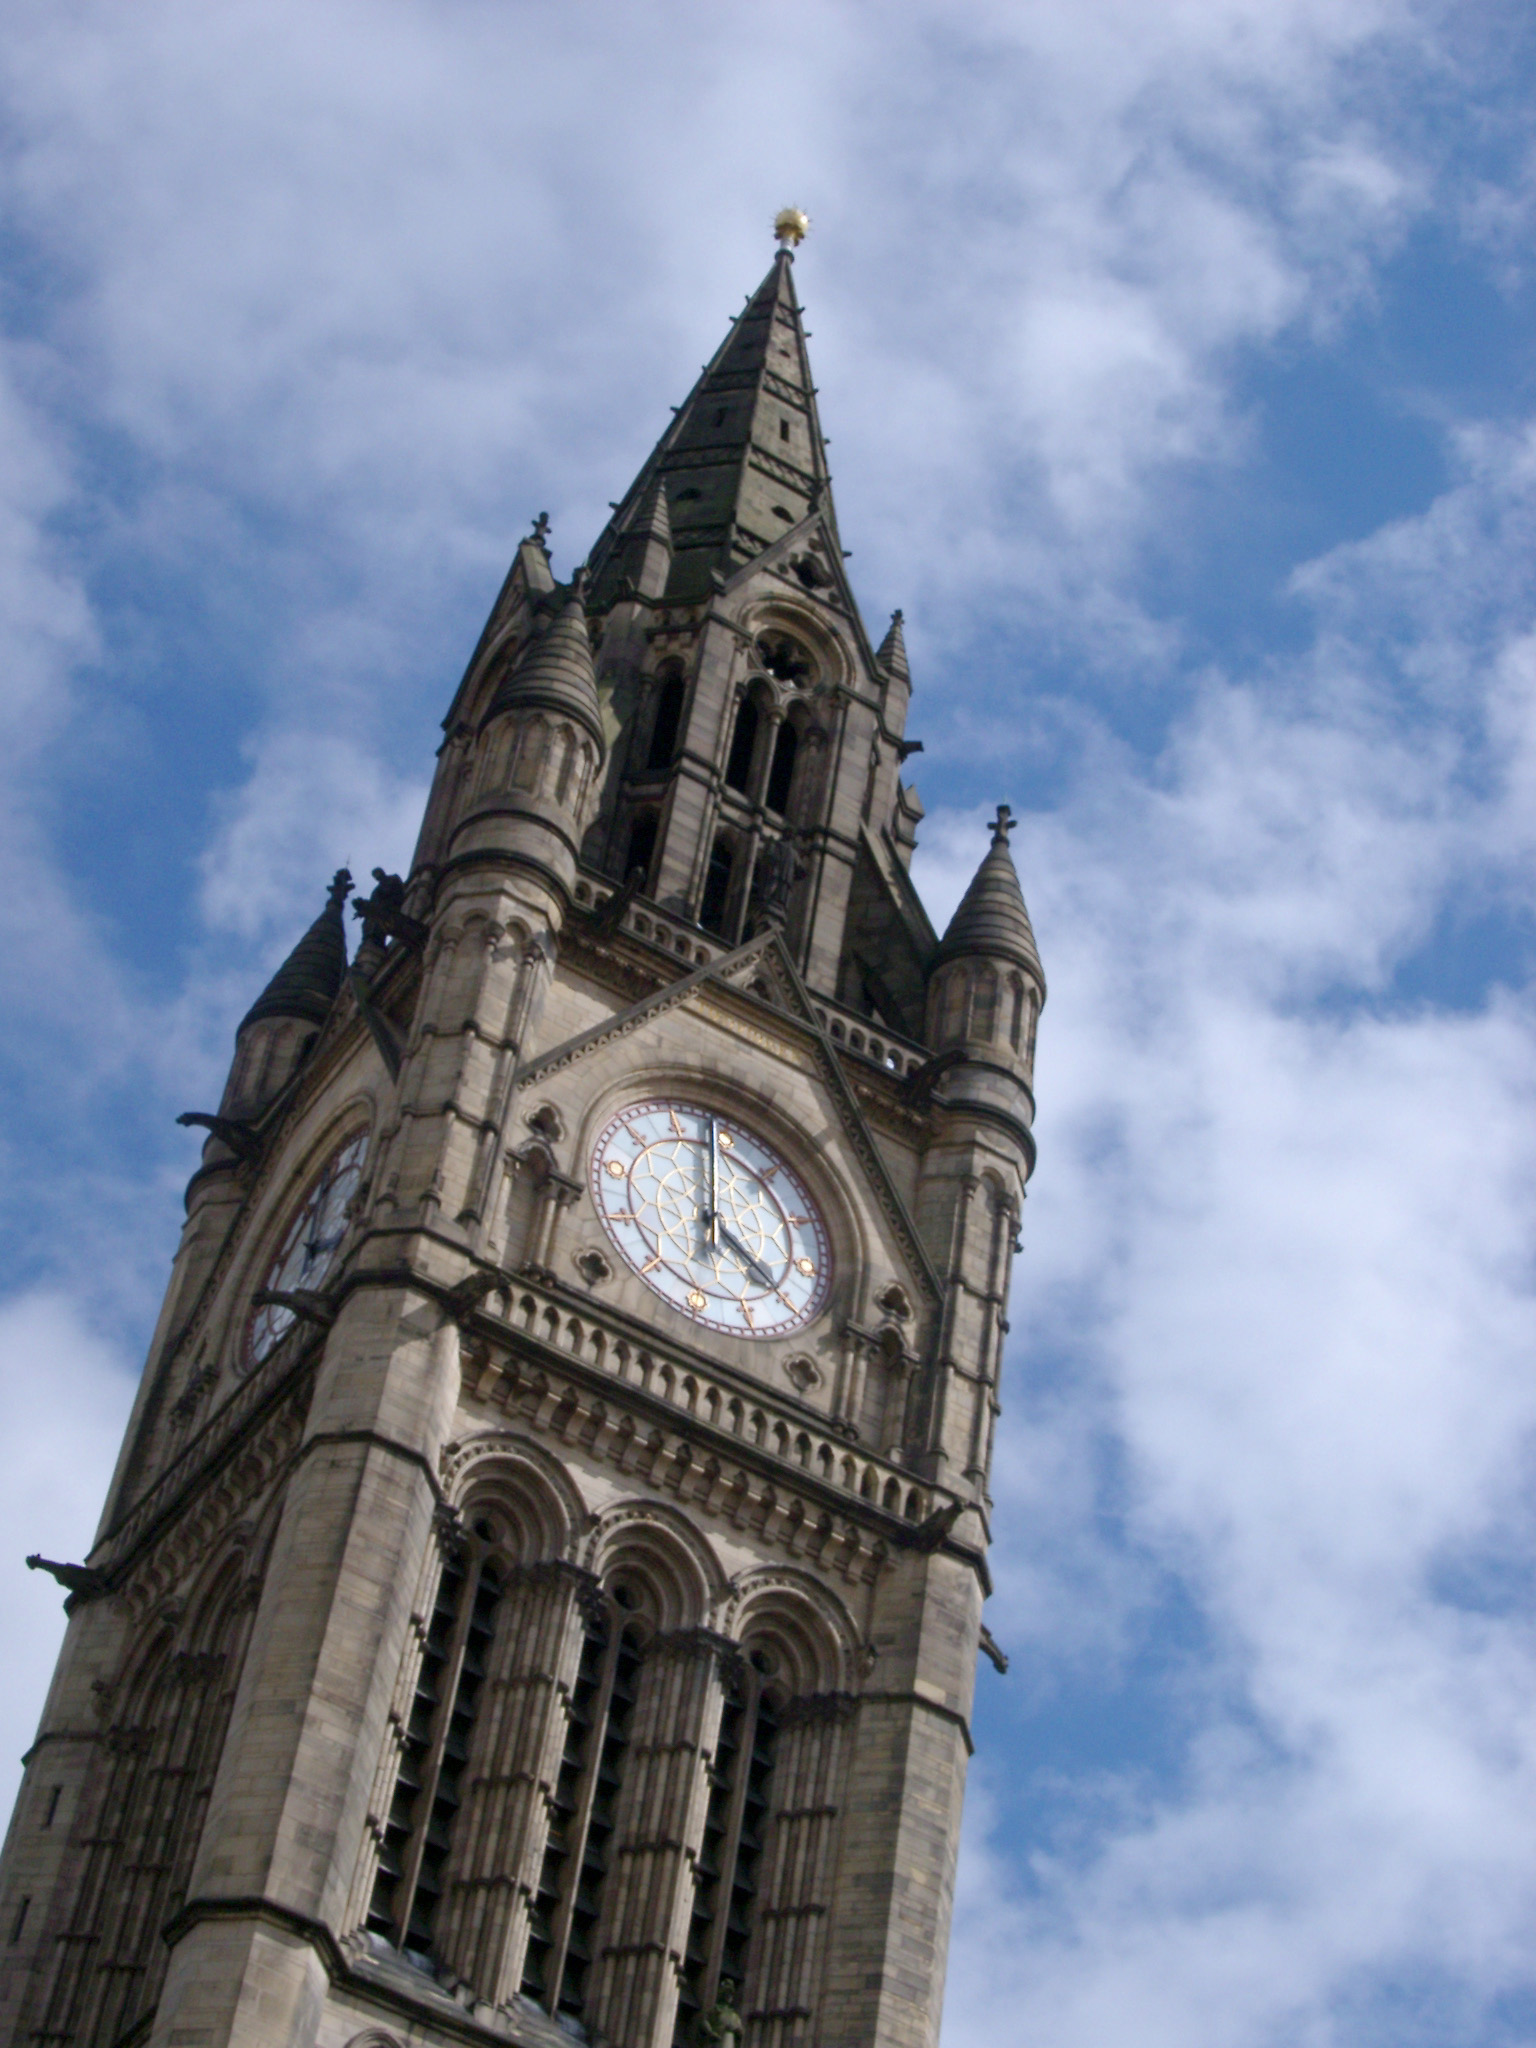 Ornate Gothic revival external facade of the Manchester Town Hall clock tower against a cloudy blue sky